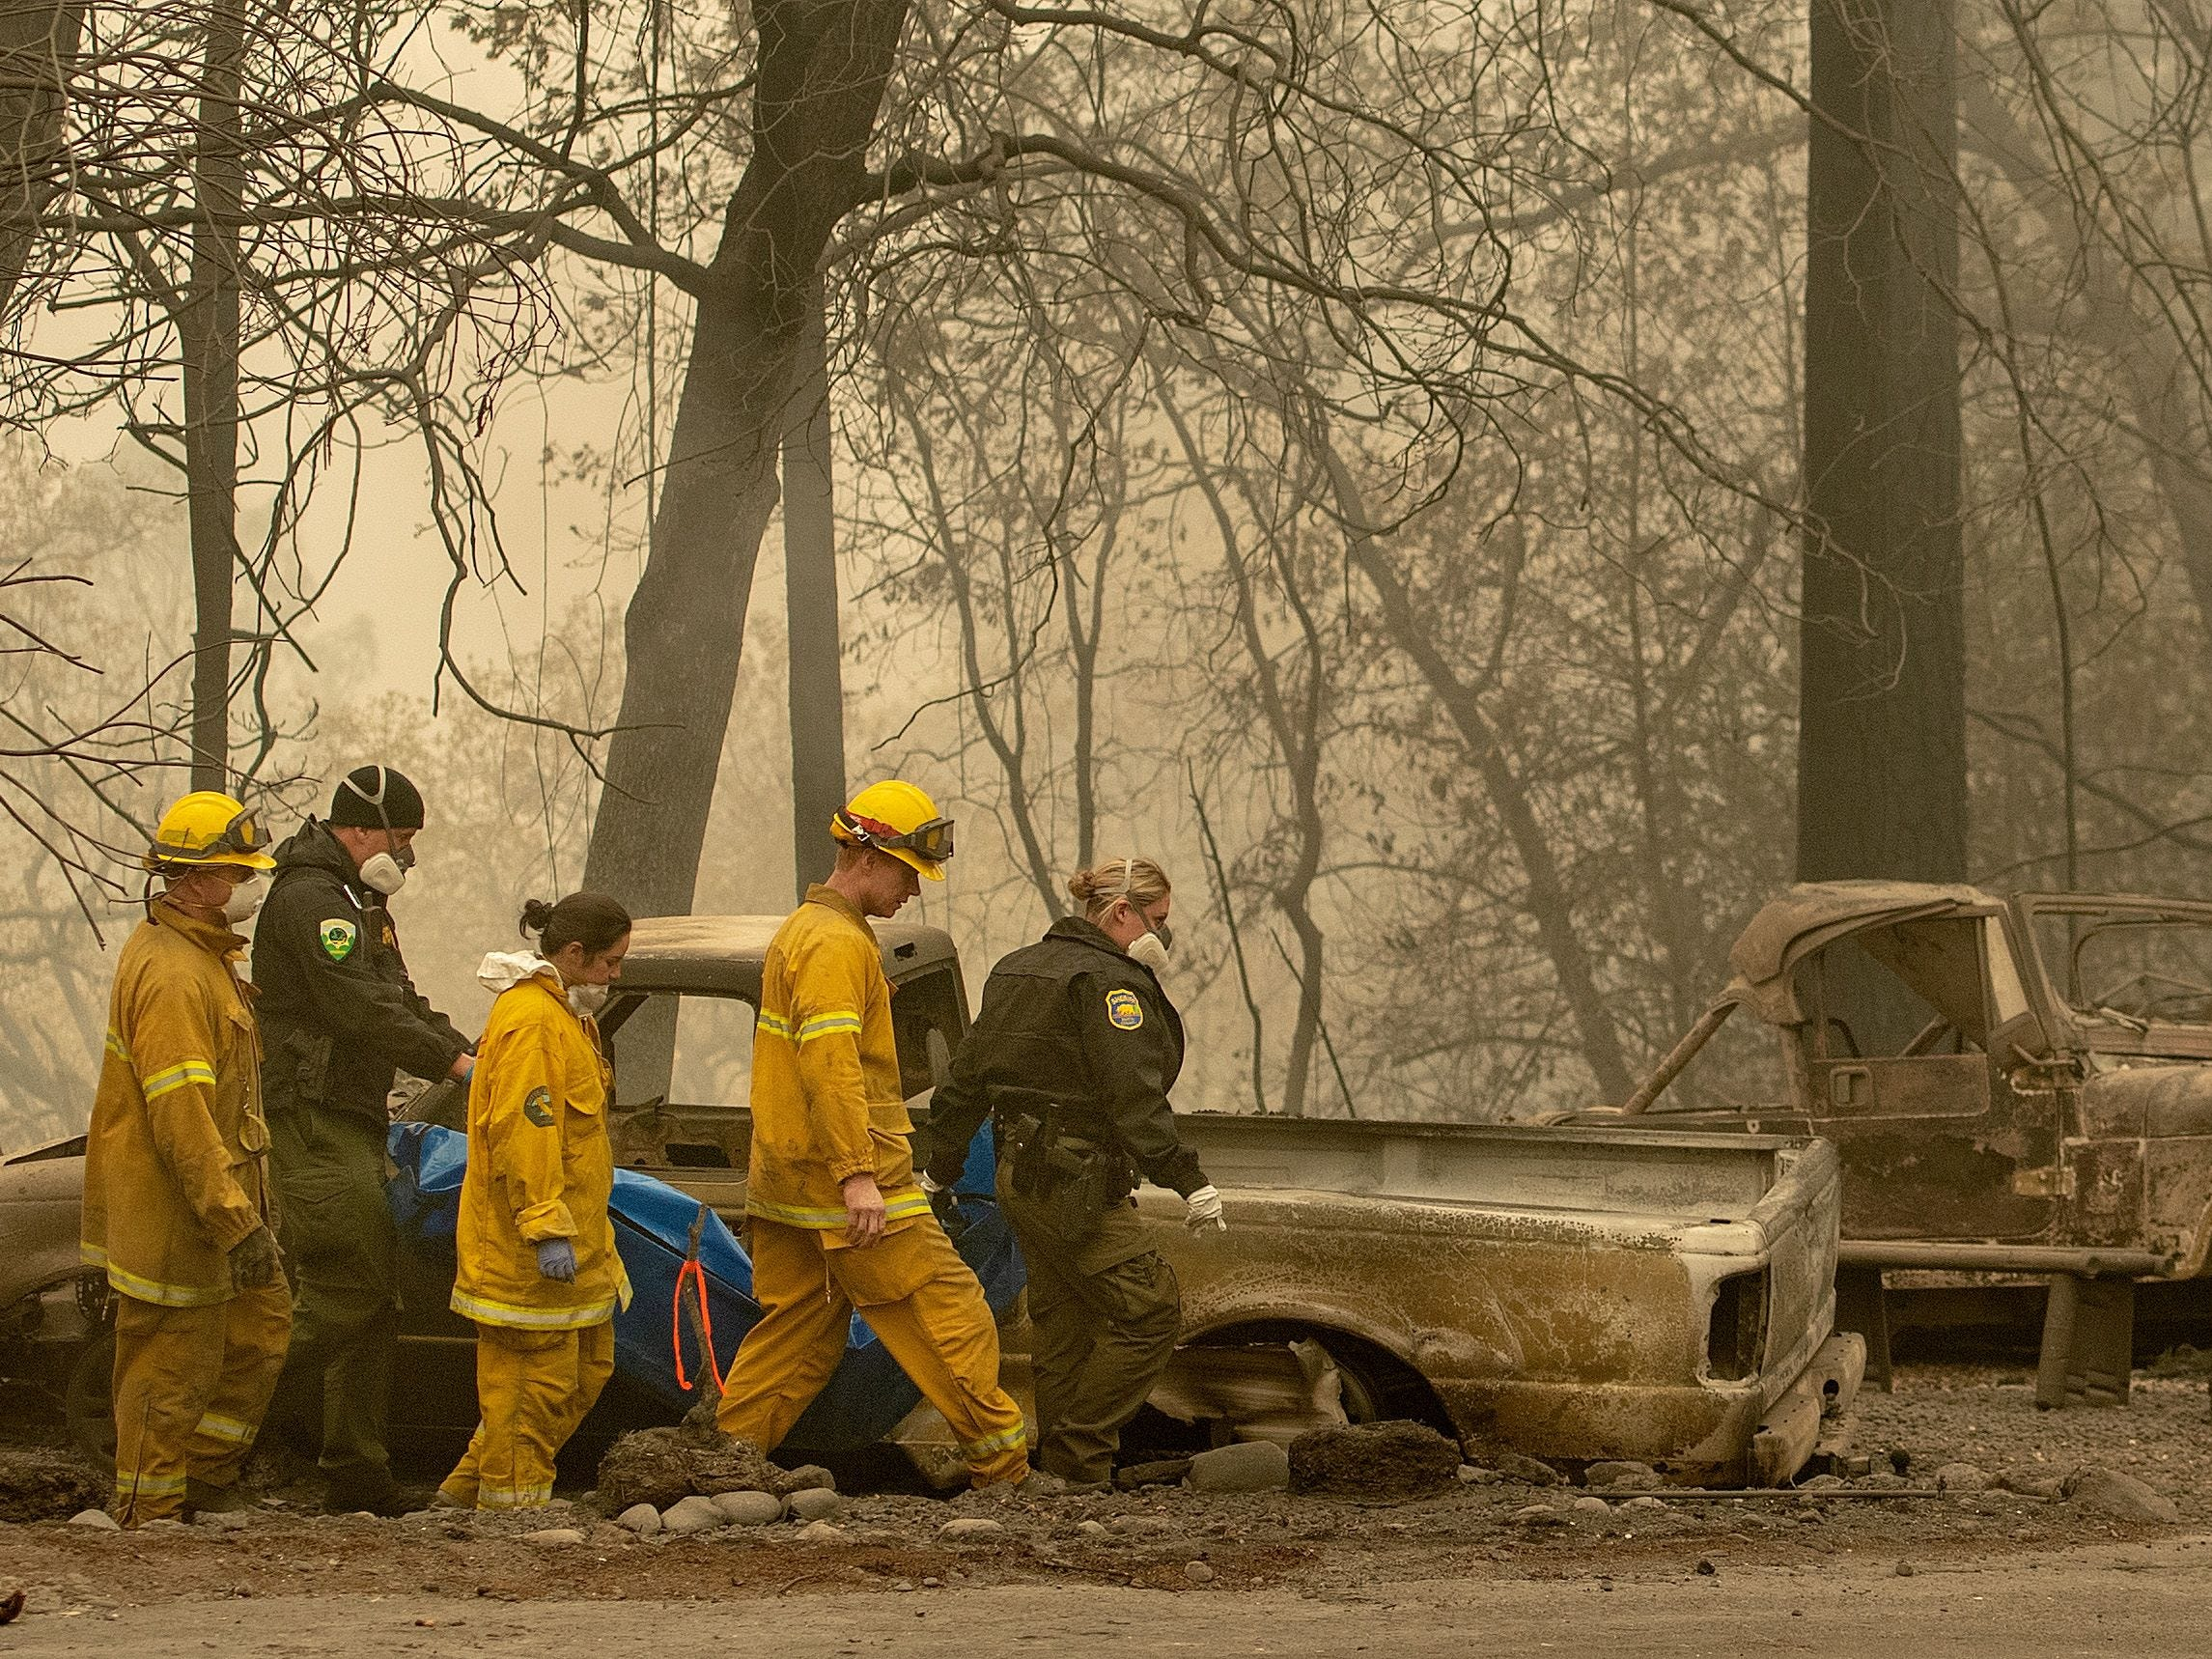 Rescue workers carry a body away from a burned property in the Holly Hills area of Paradise, Calif. on Nov. 14, 2018.